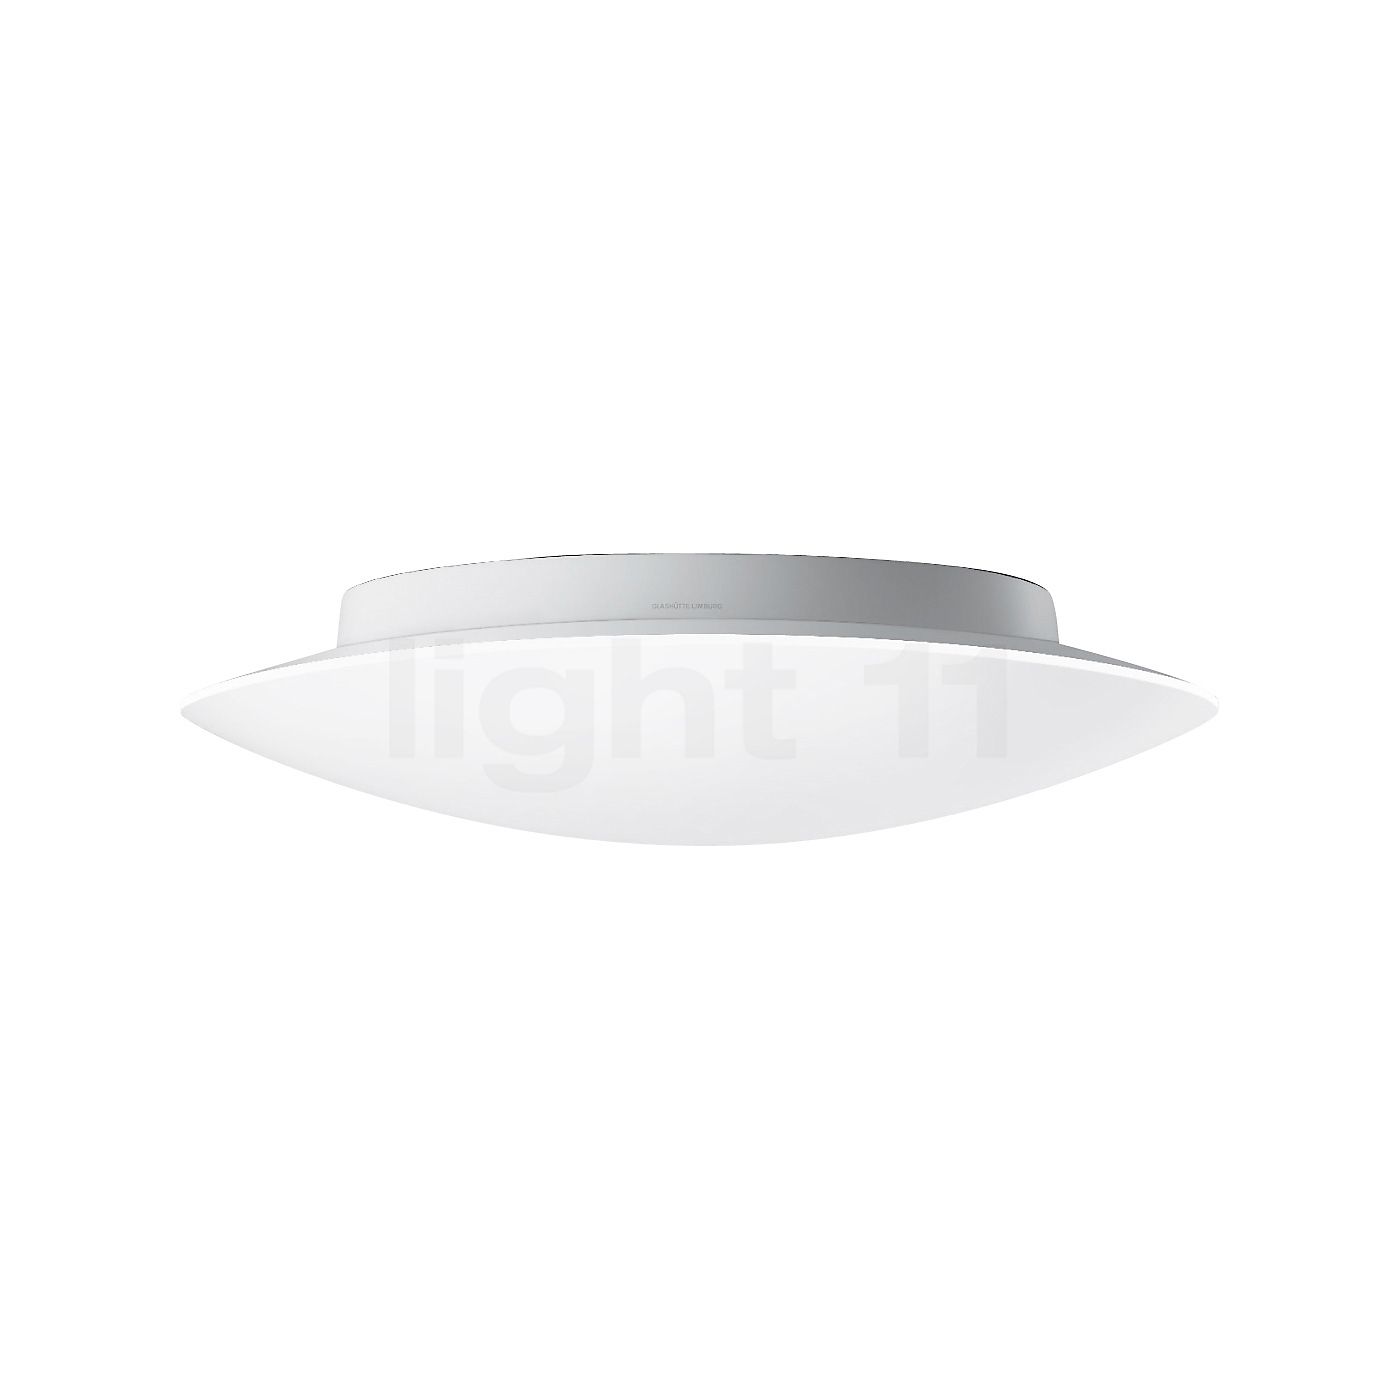 Glashutte Limburg 78302.1/7866 - wall-/ceiling light Halo Ceiling lights buy at light11.eu